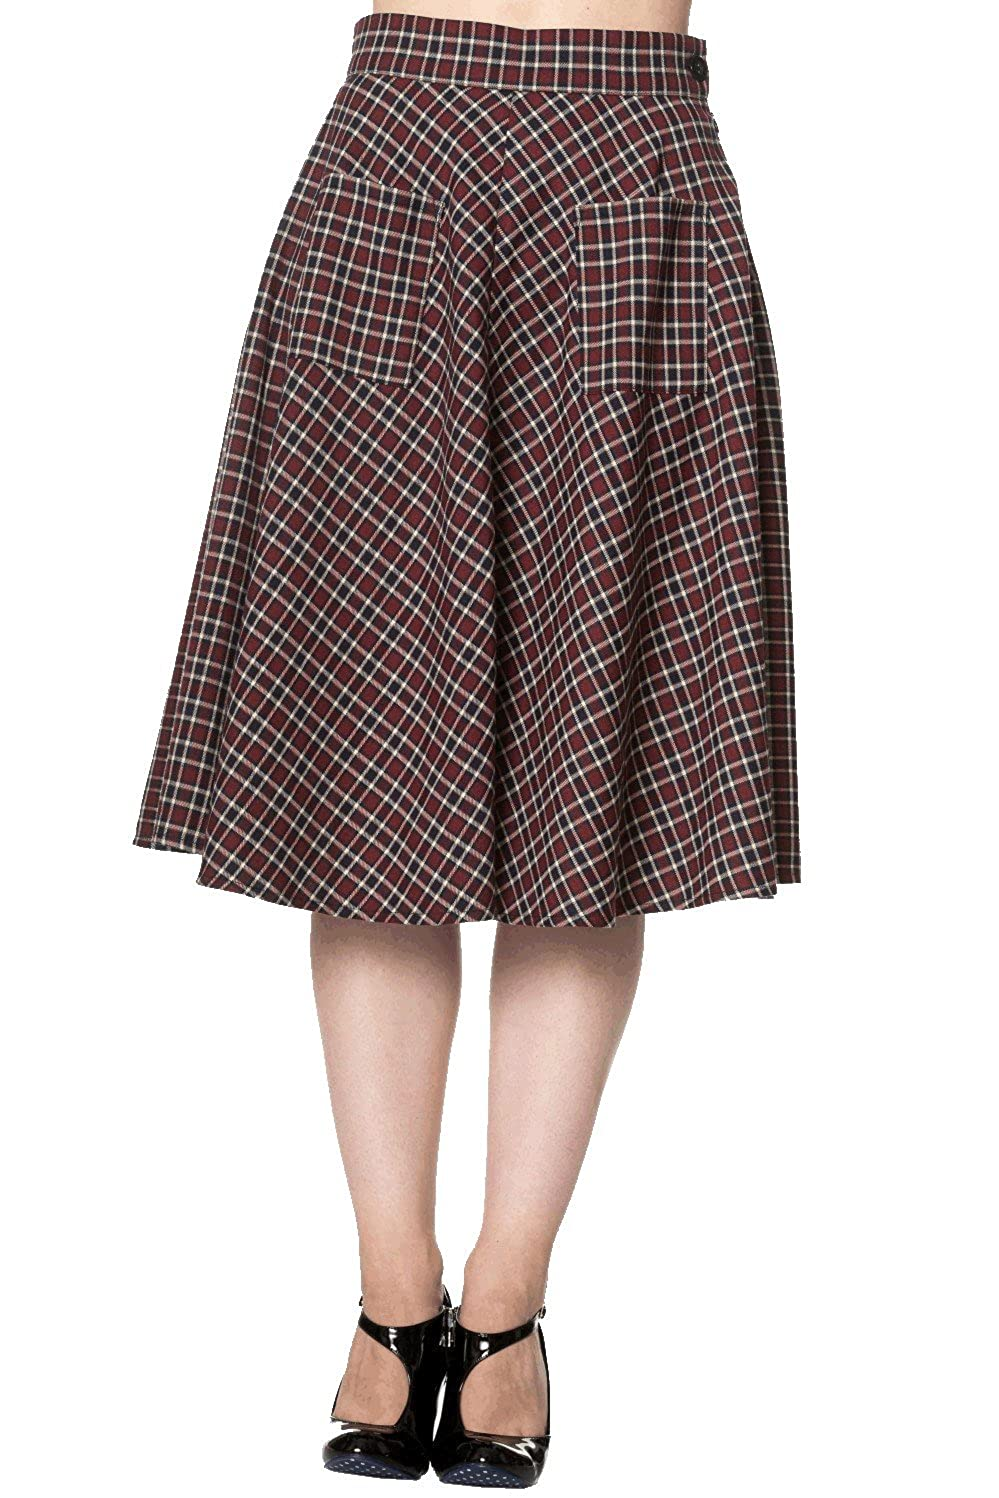 1950s Swing Skirt, Poodle Skirt, Pencil Skirts Banned Apparel - Apple of My Eye Skirt $51.73 AT vintagedancer.com